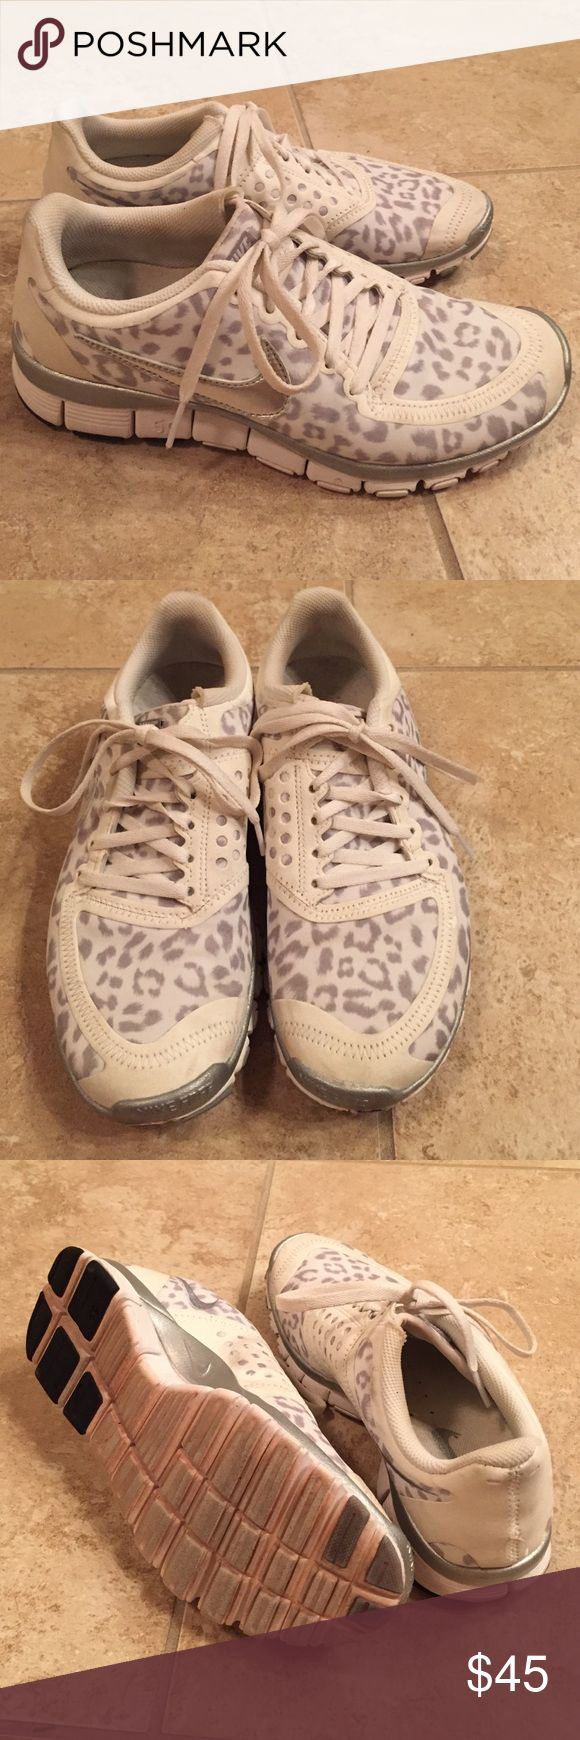 Rare Leopard Nike Free 5.0 Shoes Adorable white/gray leopard Nikes with shiny silver swooshes. Slight wear and the soles are a bit orange from our track surface. Nike Shoes Athletic Shoes